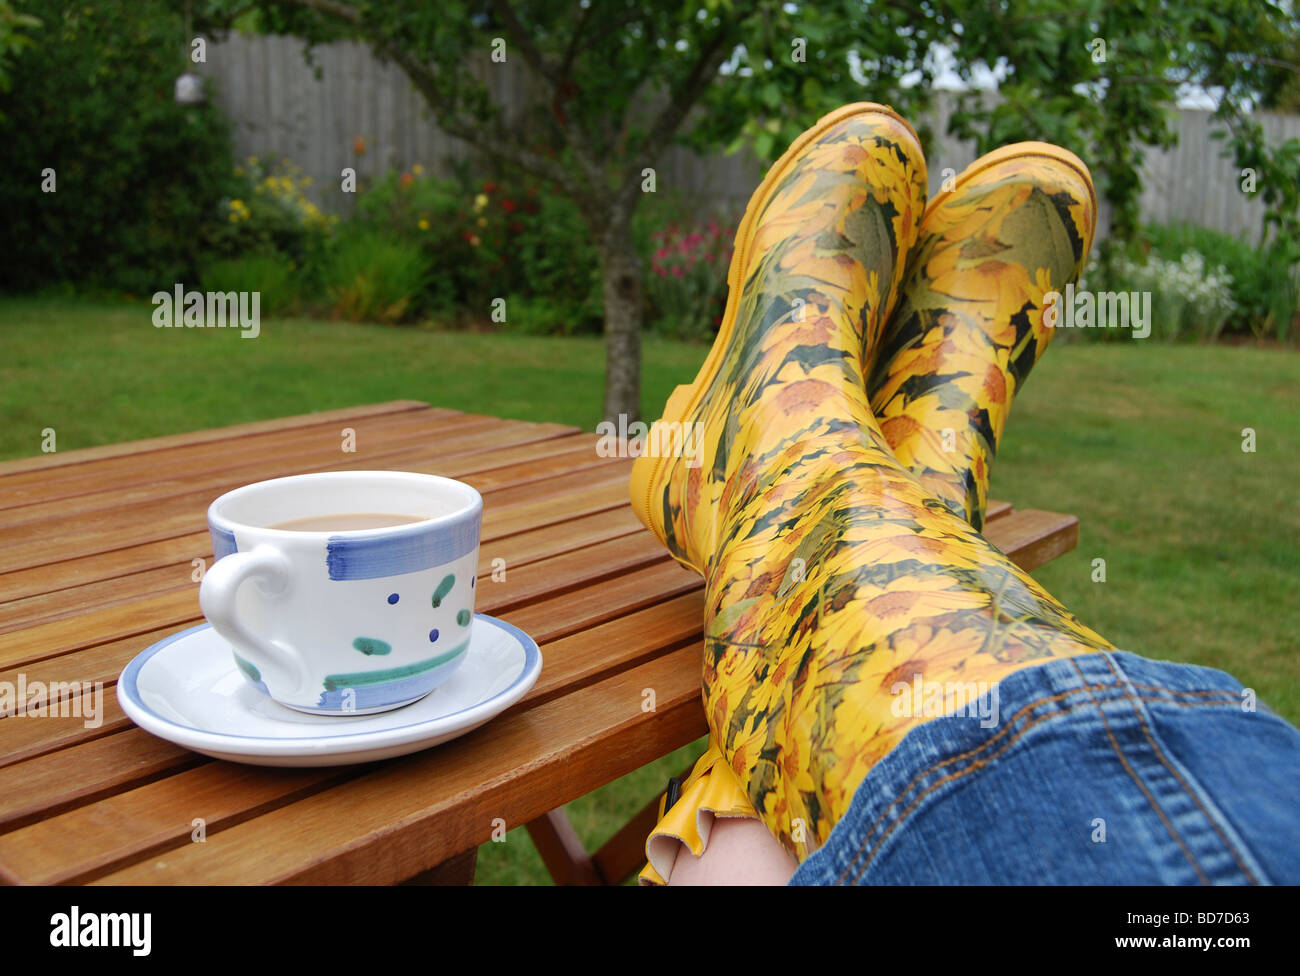 A well-earned coffee break for the gardener and her yellow wellies! Stock Photo